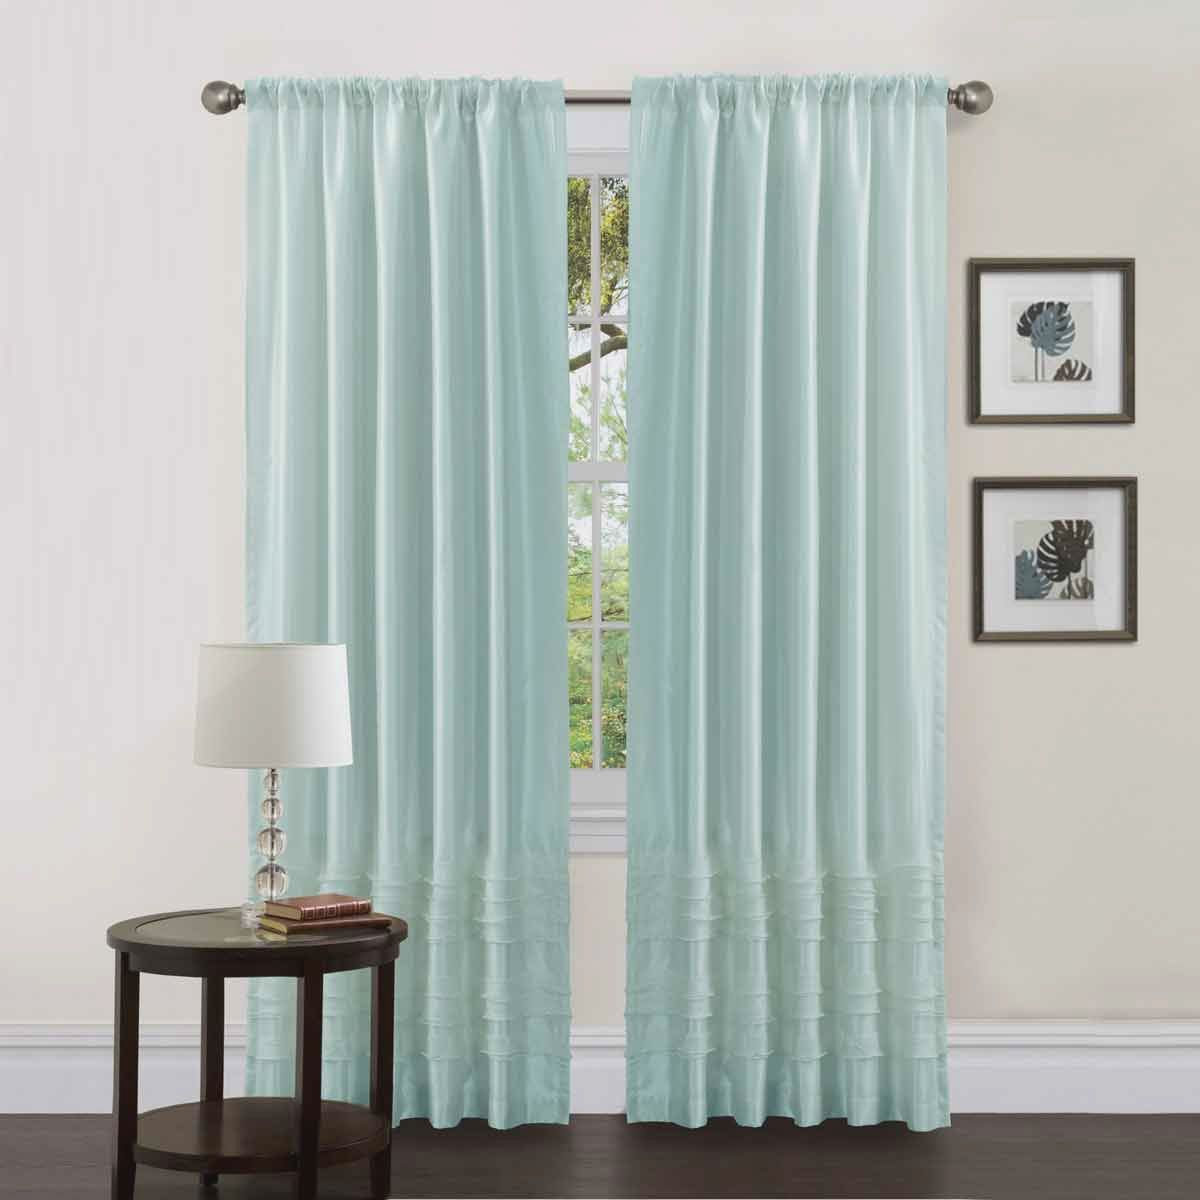 Simple Curtain Designs For Bedroom More Picture Simple